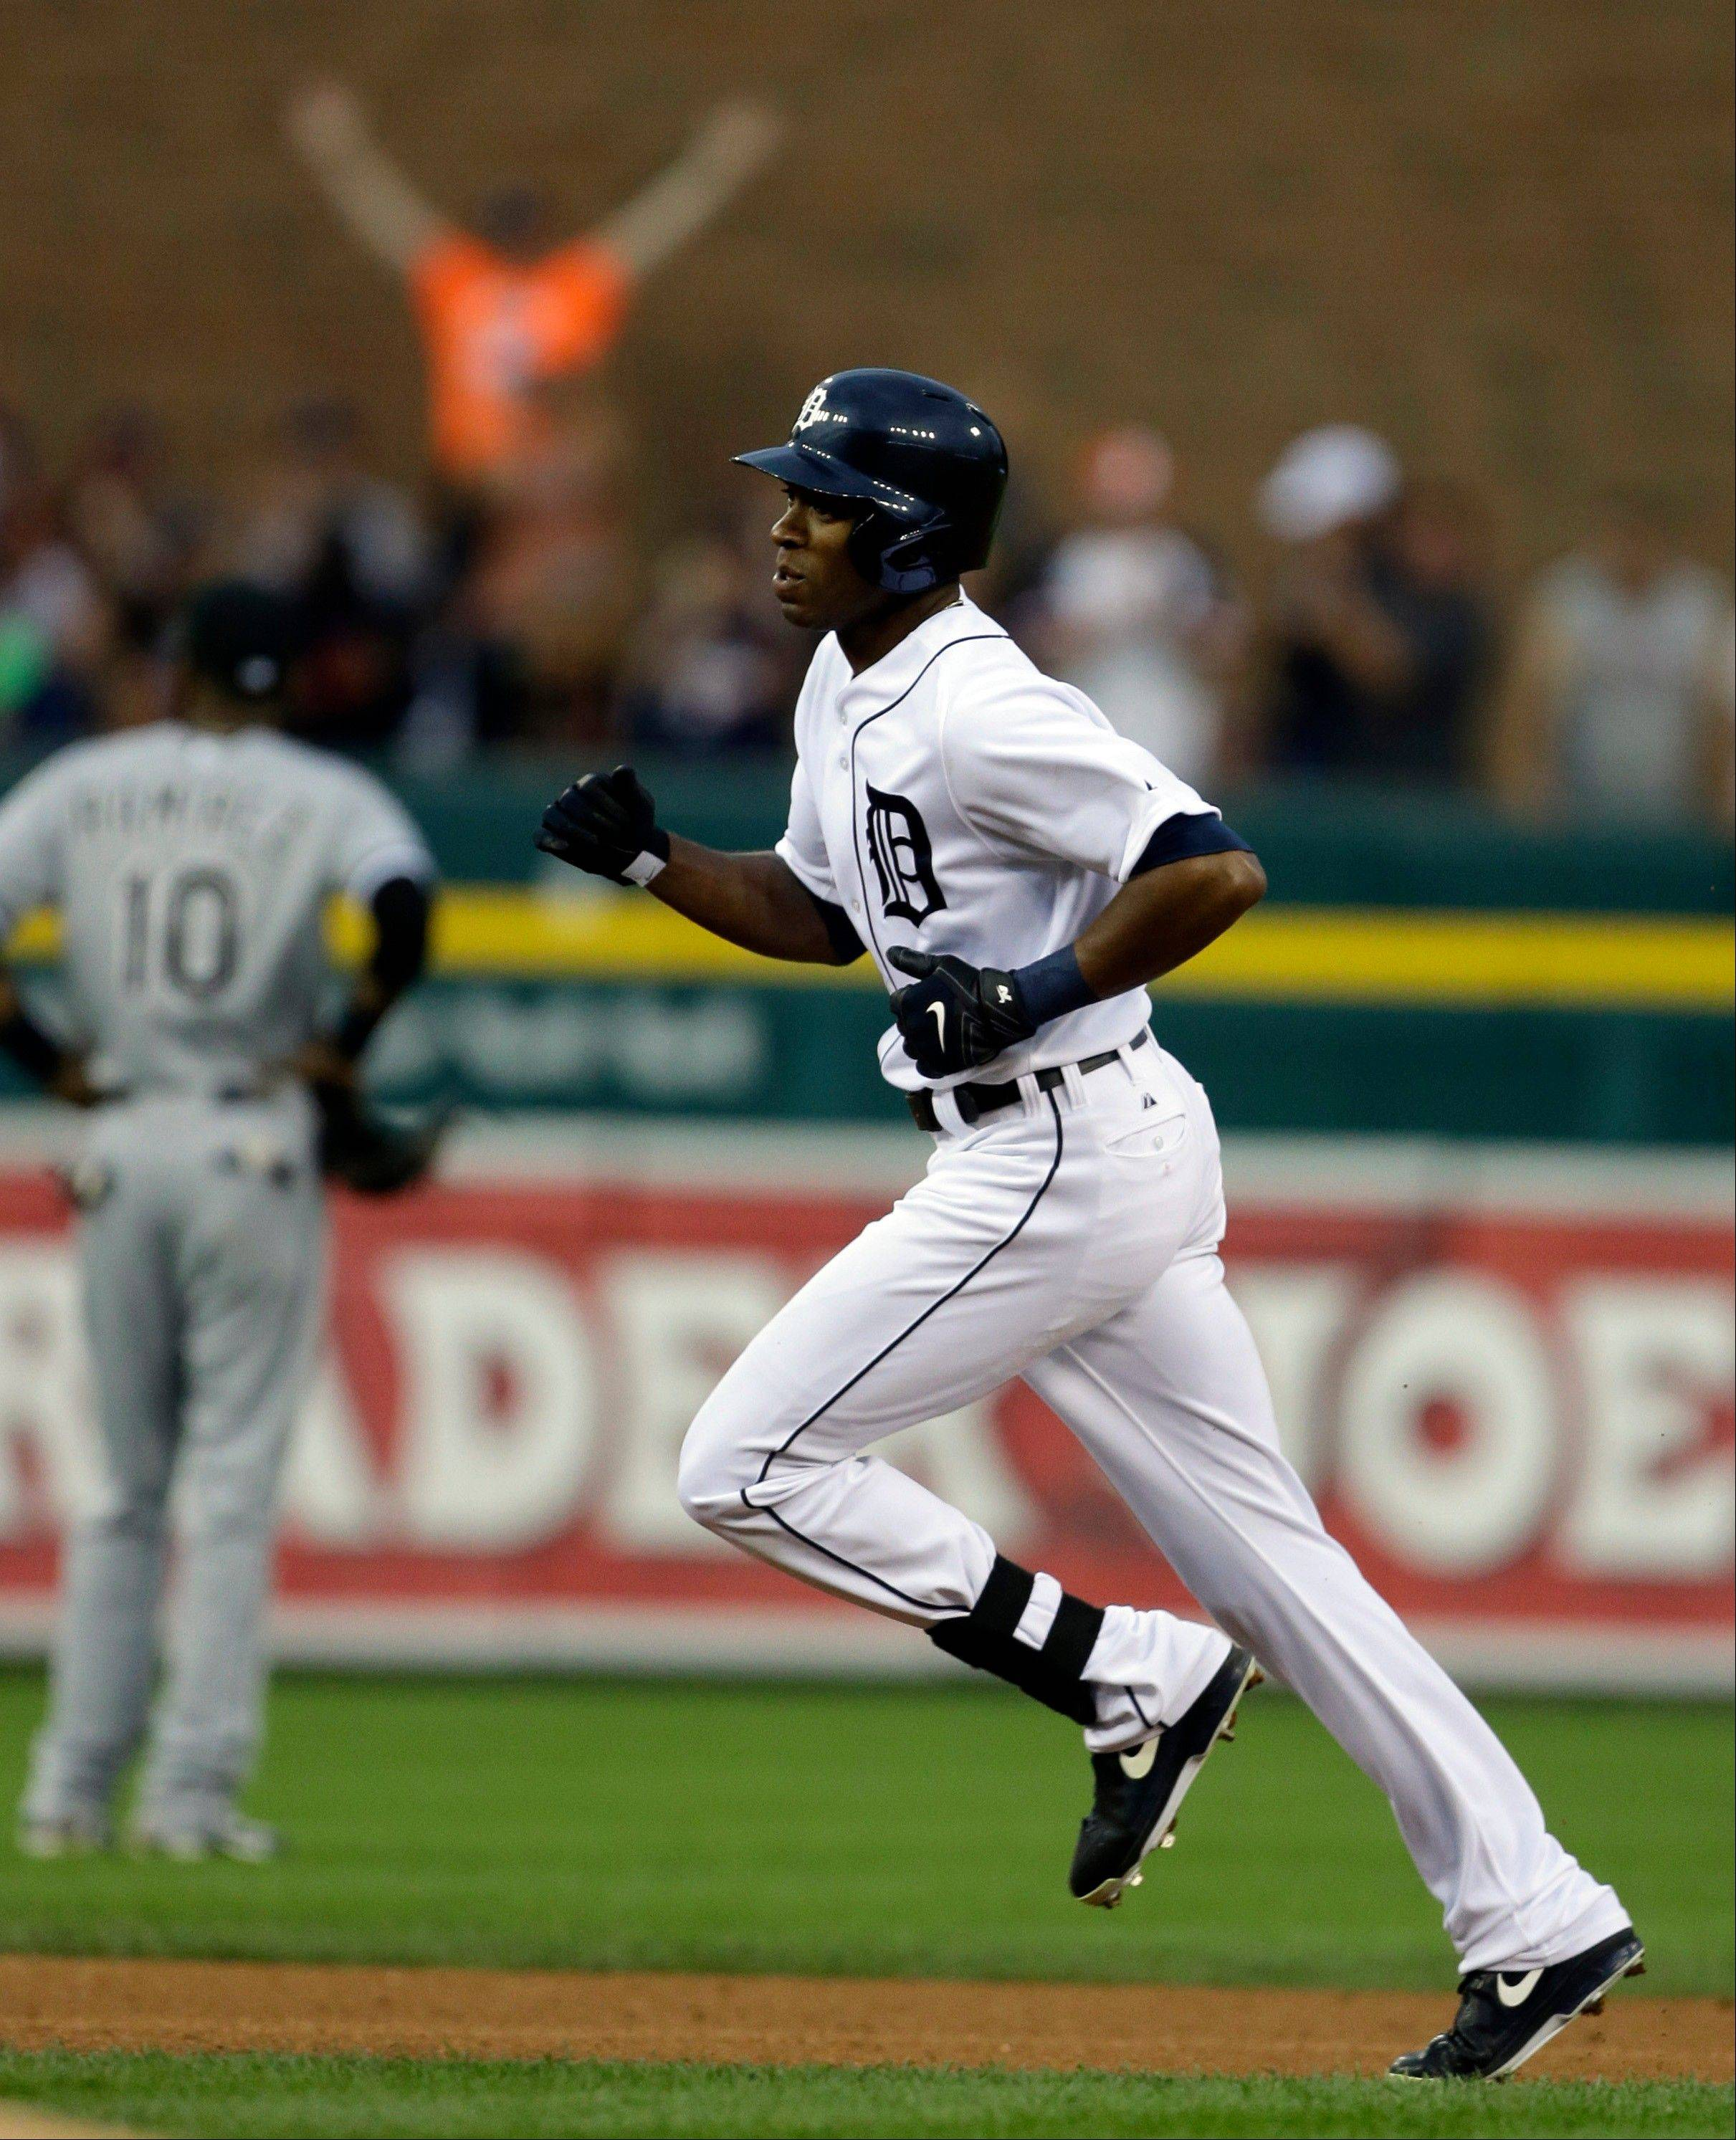 Detroit Tigers' Austin Jackson rounds second base after his solo home run during the fifth inning of a baseball game against the Chicago White Sox in Detroit, Friday.